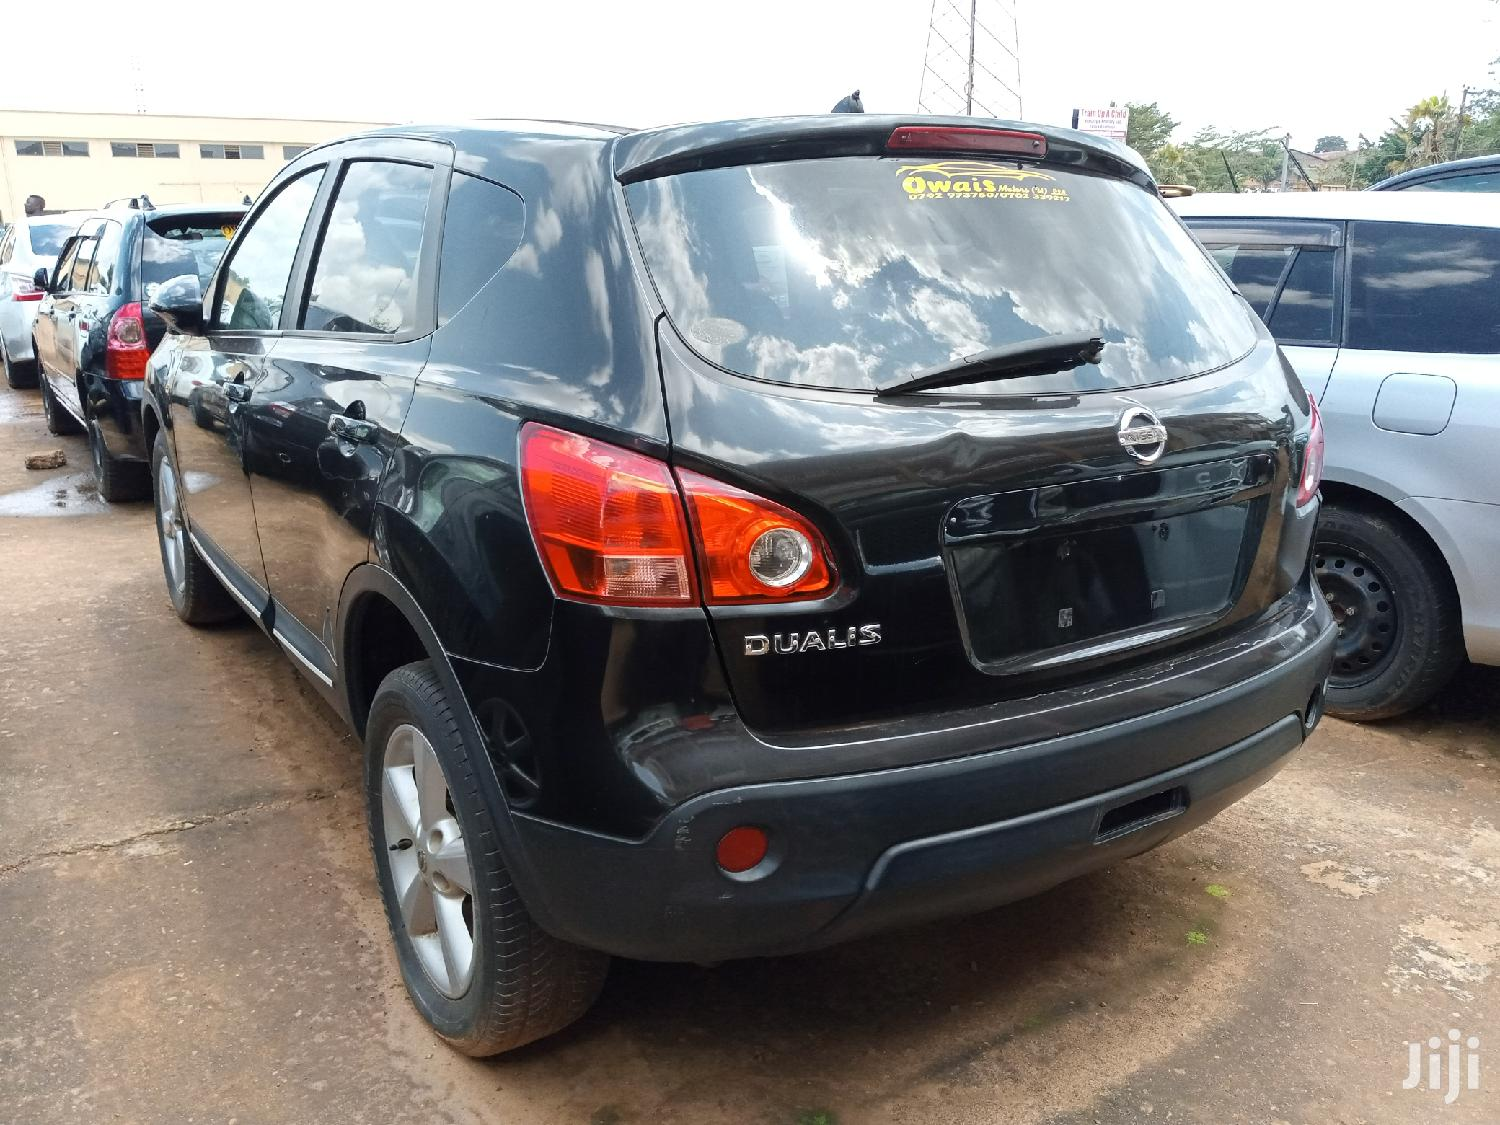 New Nissan Dualis 2007 Black | Cars for sale in Kampala, Central Region, Uganda